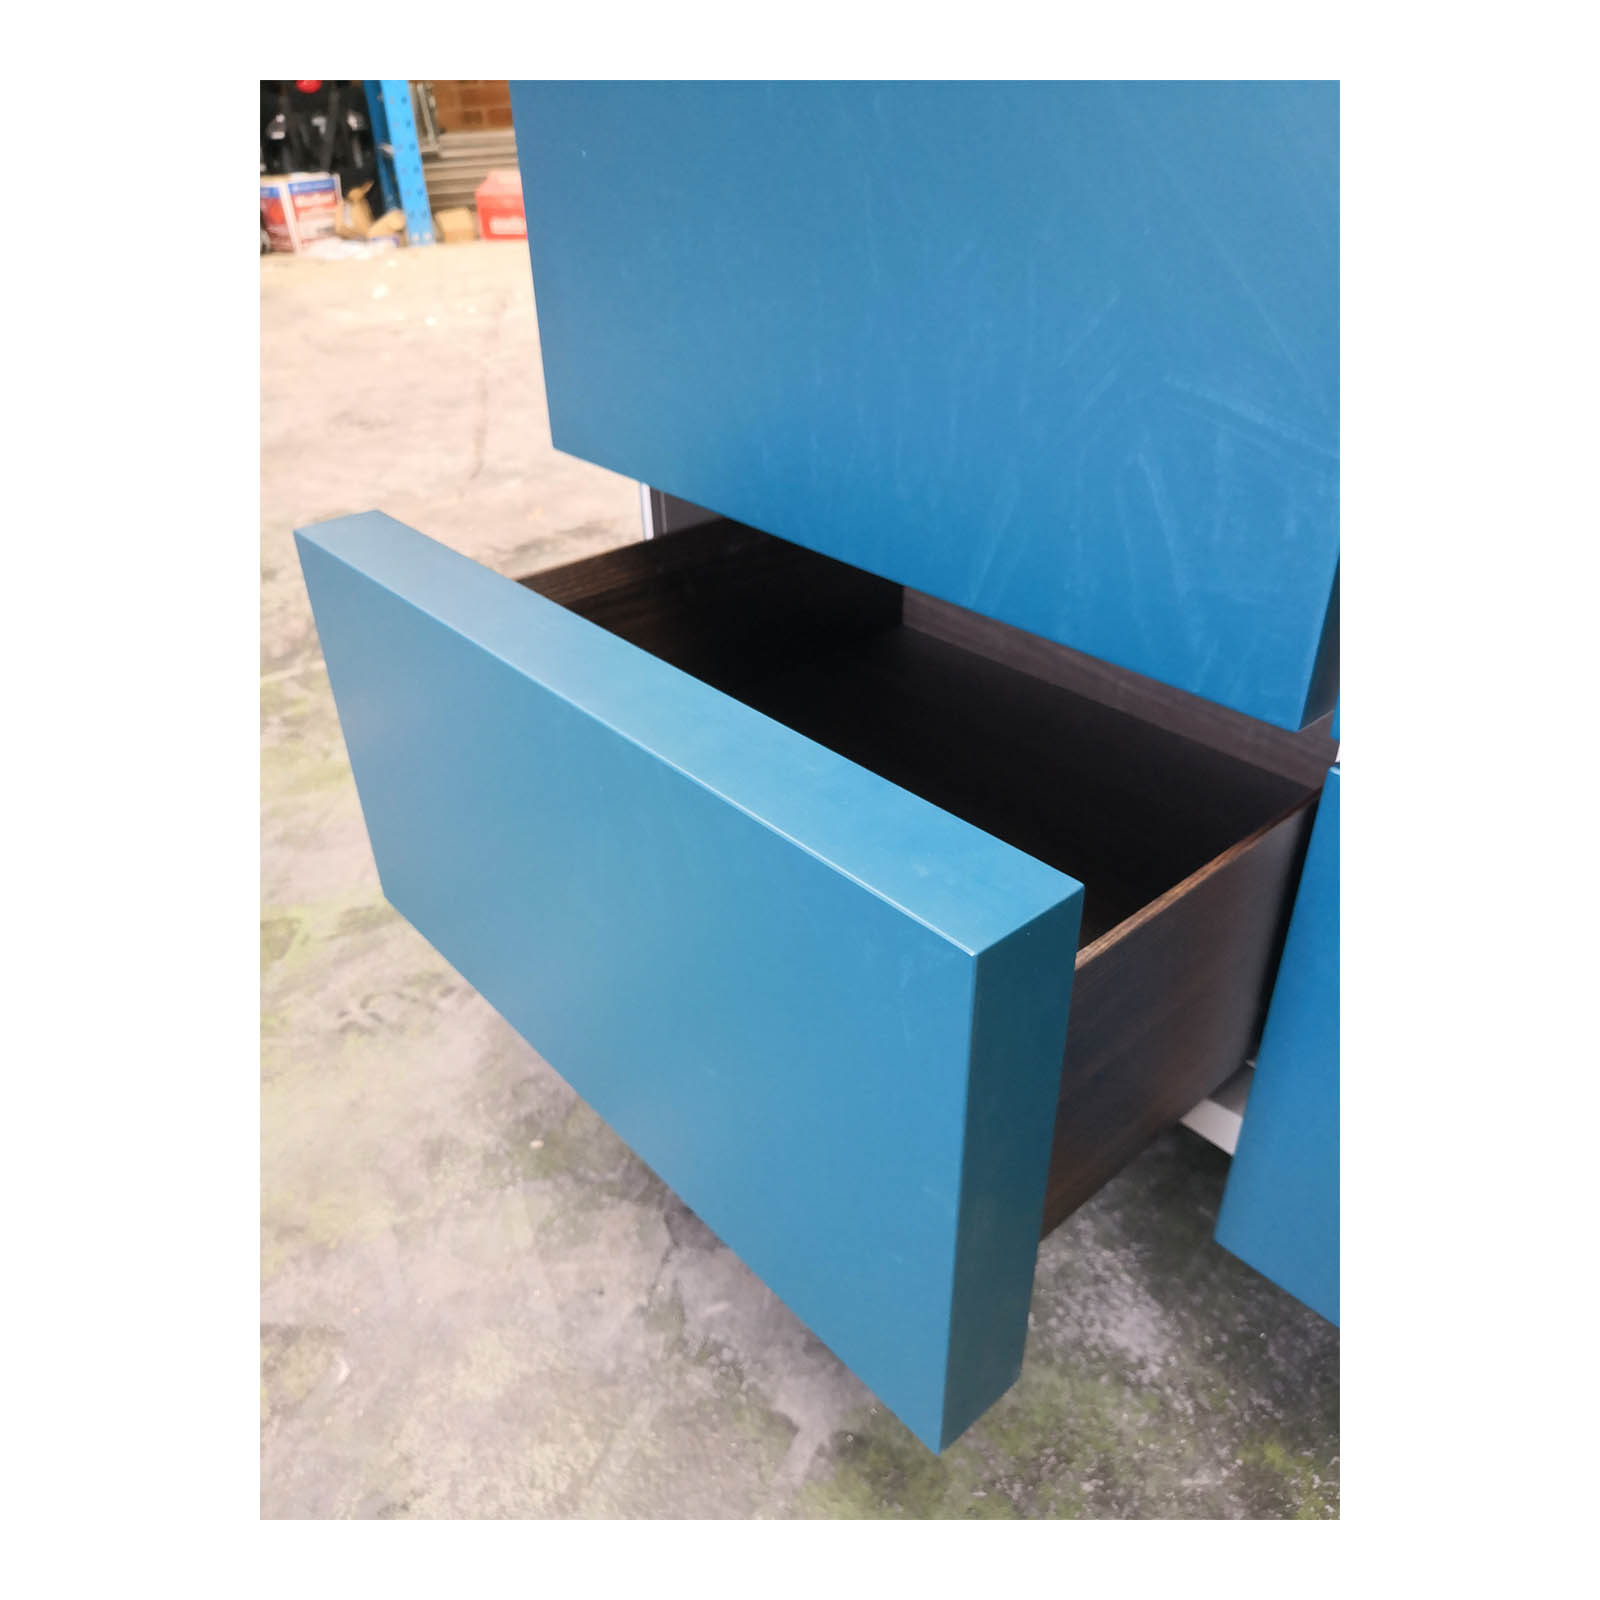 Two Design Lovers teal storage cabinet drawer